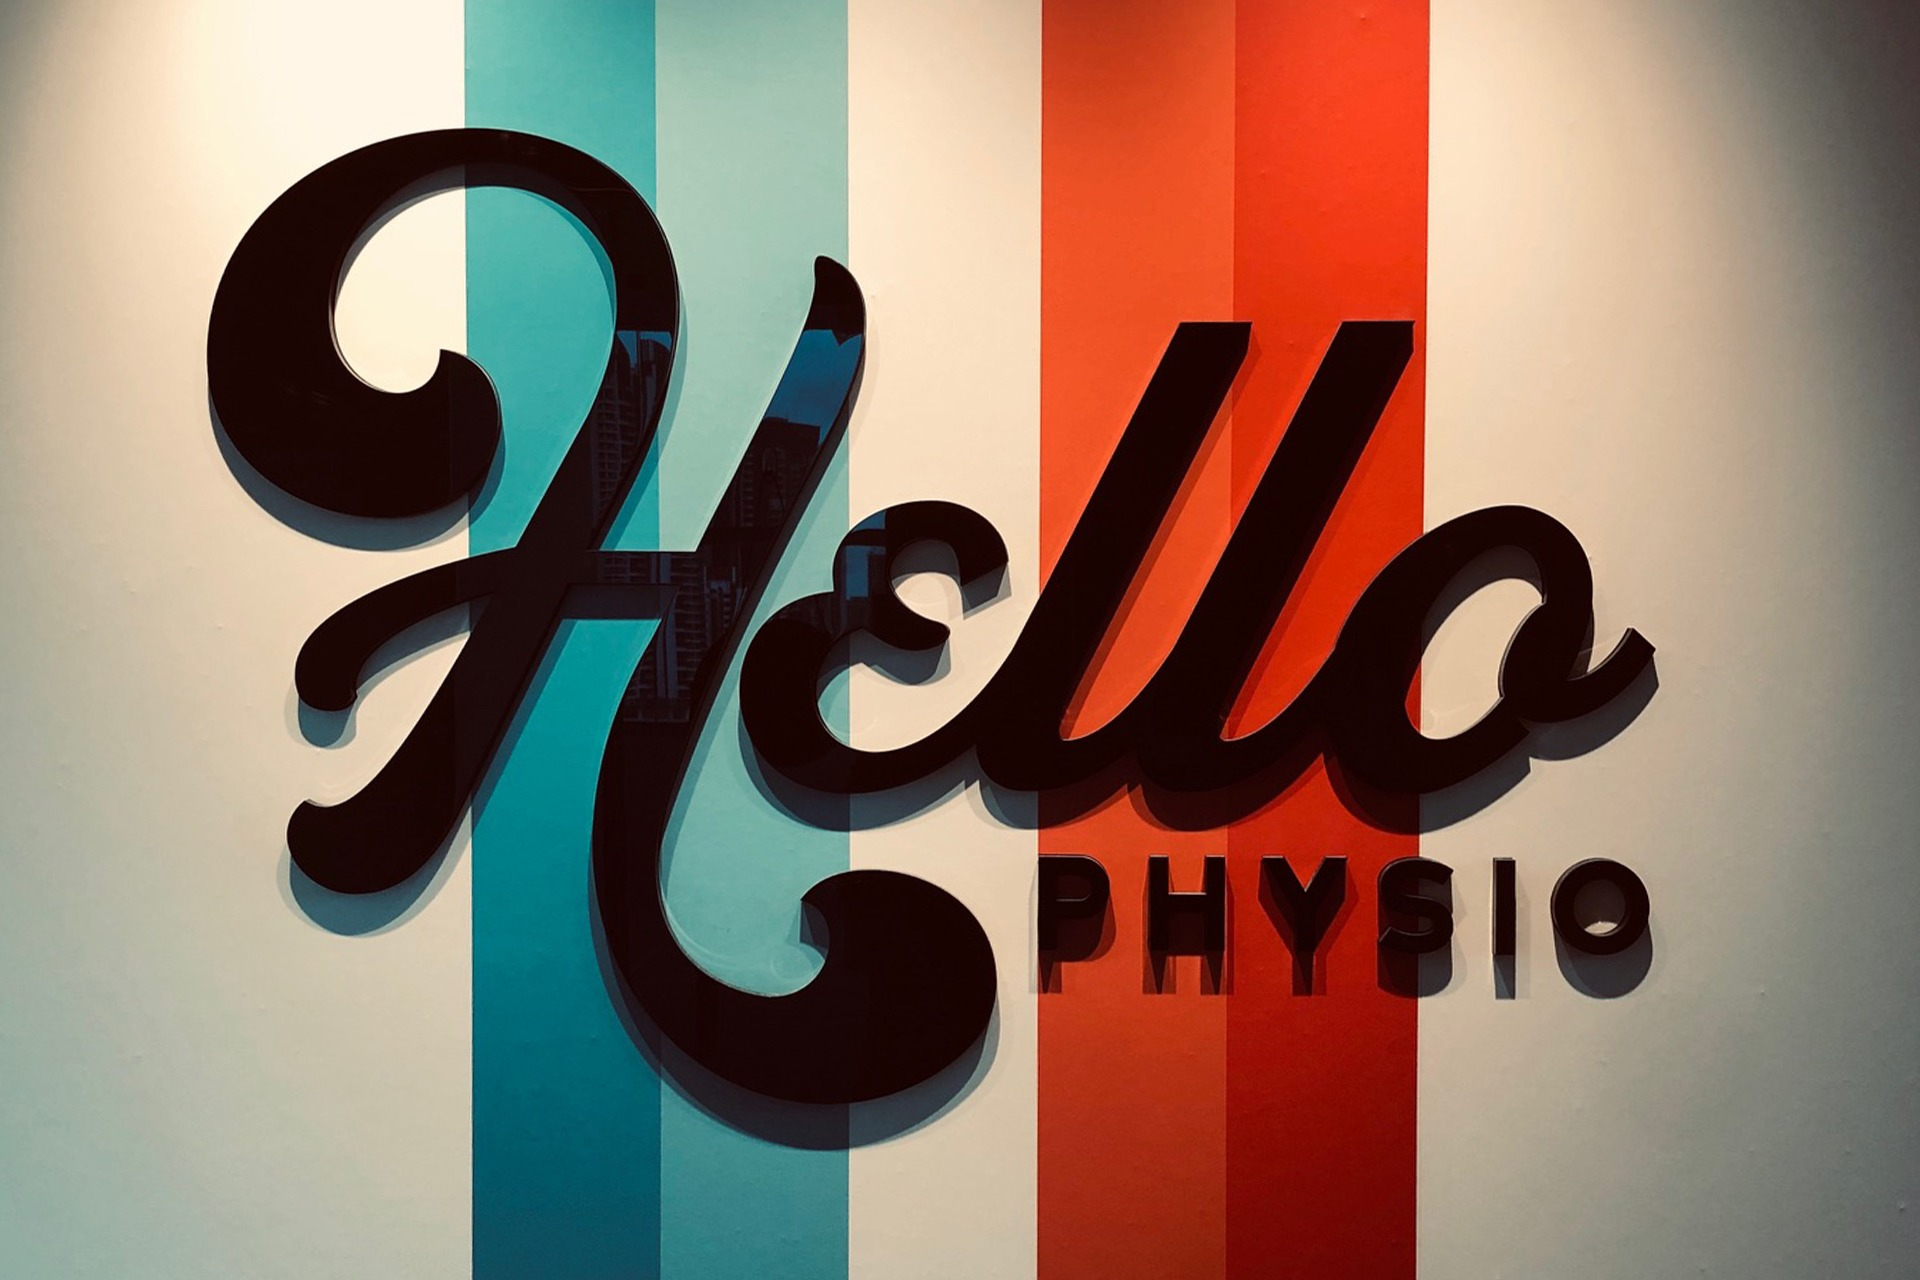 hellophysio best physiotherapist physiotherapy services singapore 1